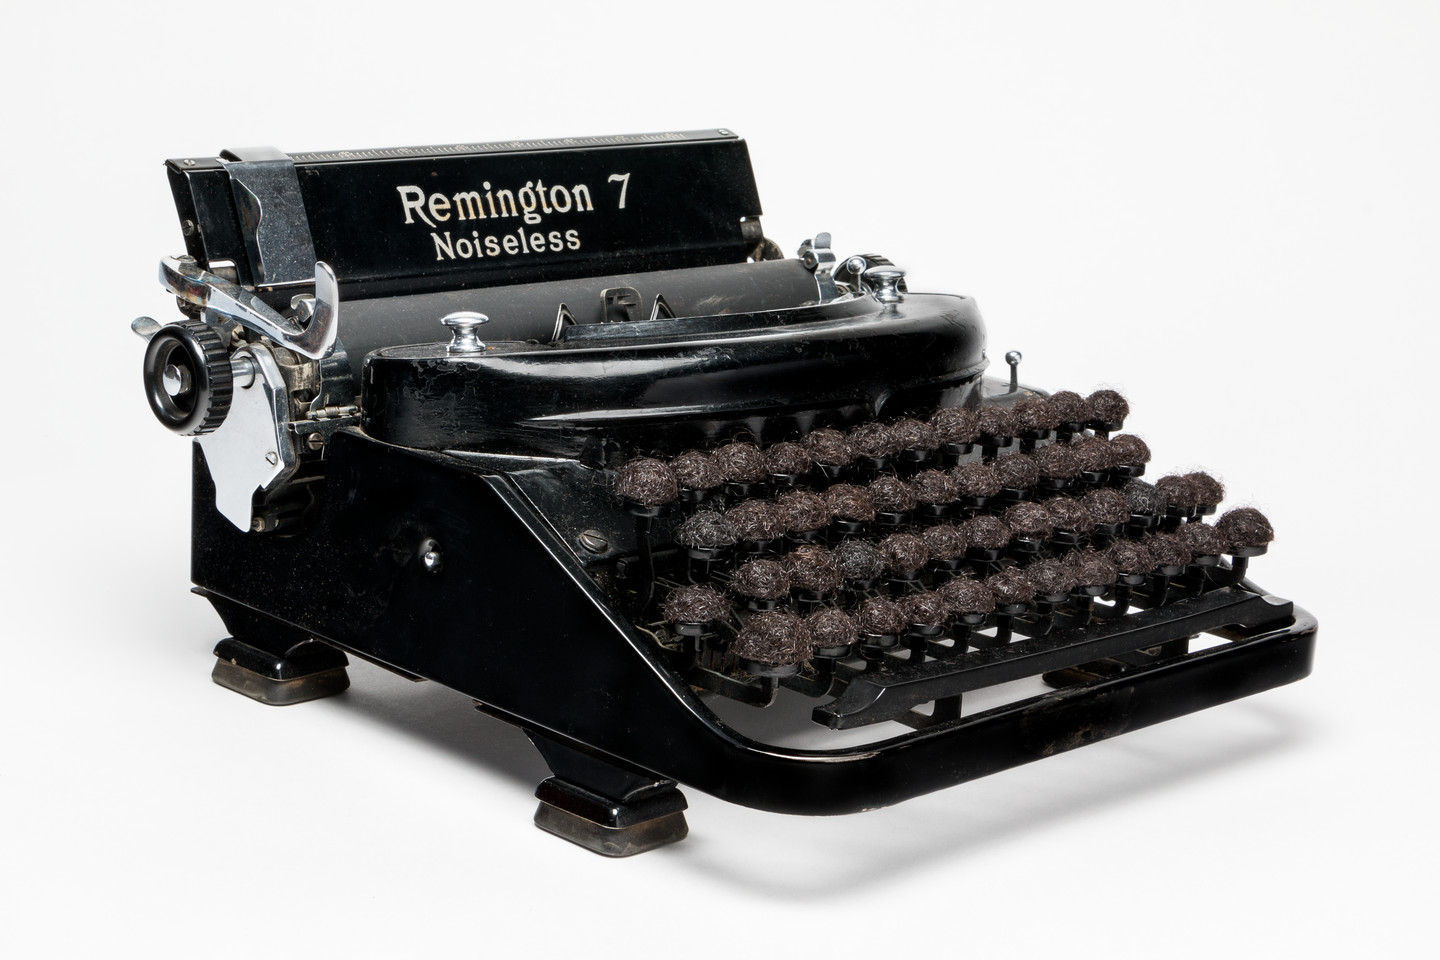 """An antique, black and silver typewriter with the words """"Remington 7 Noiseless"""" emblazoned on the top. The lettered keys of the typewriter have been replaced with balls of dark brown hair."""